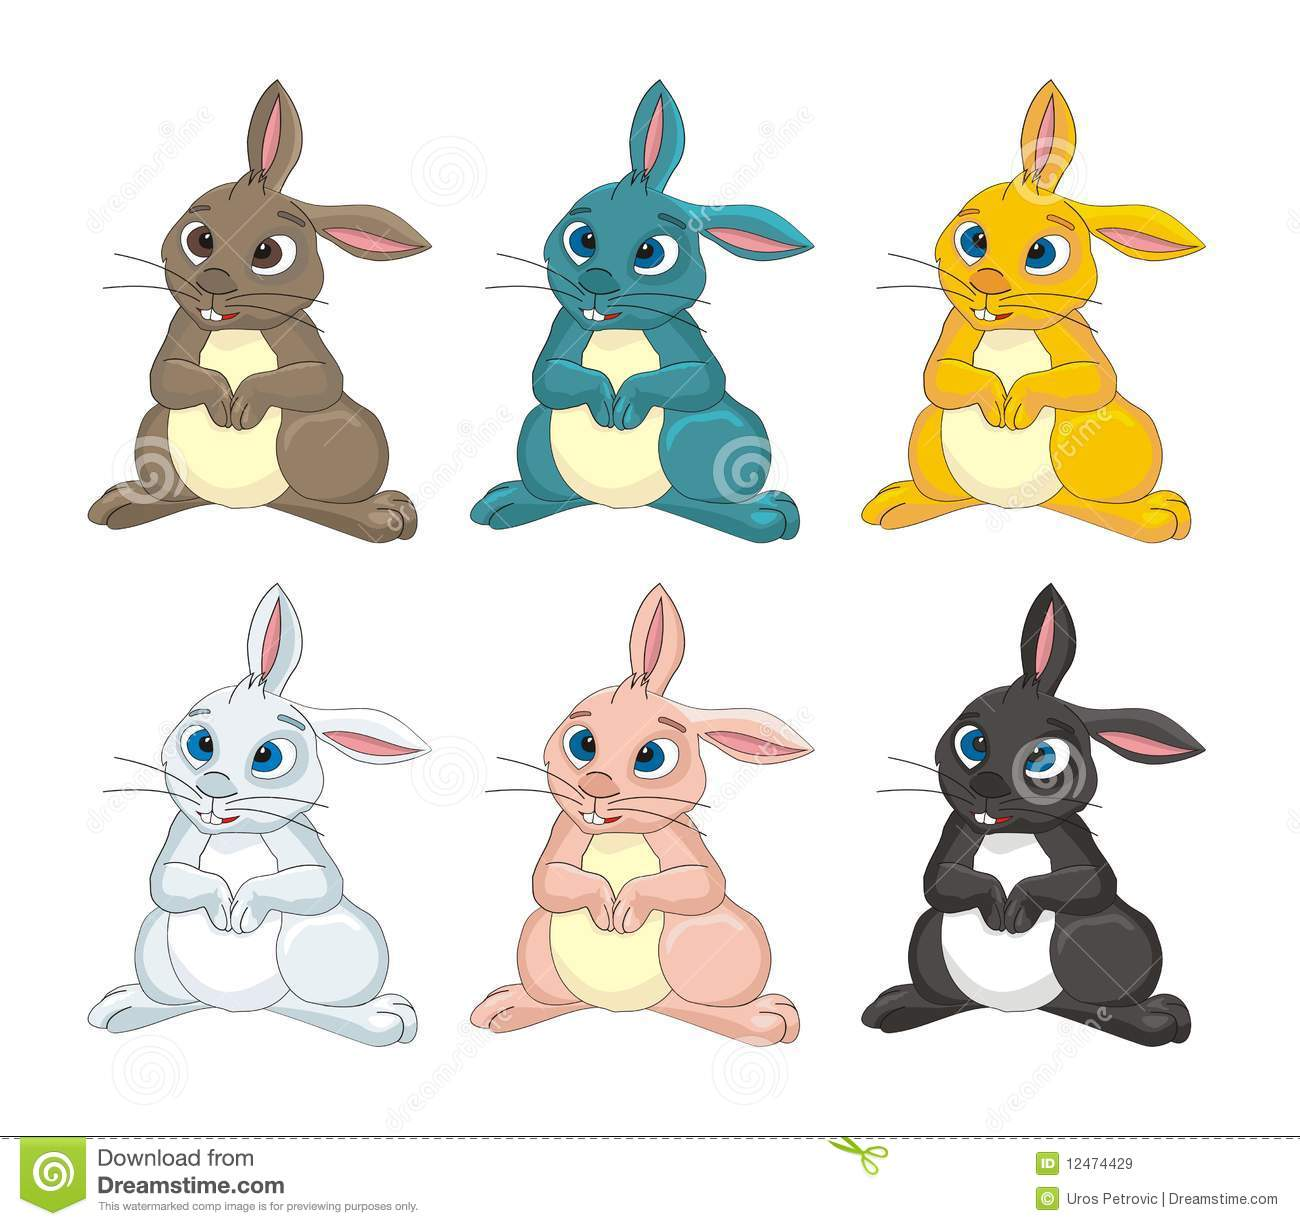 Rabbit Bunny Cartoon Vector Illustration Royalty Free ...